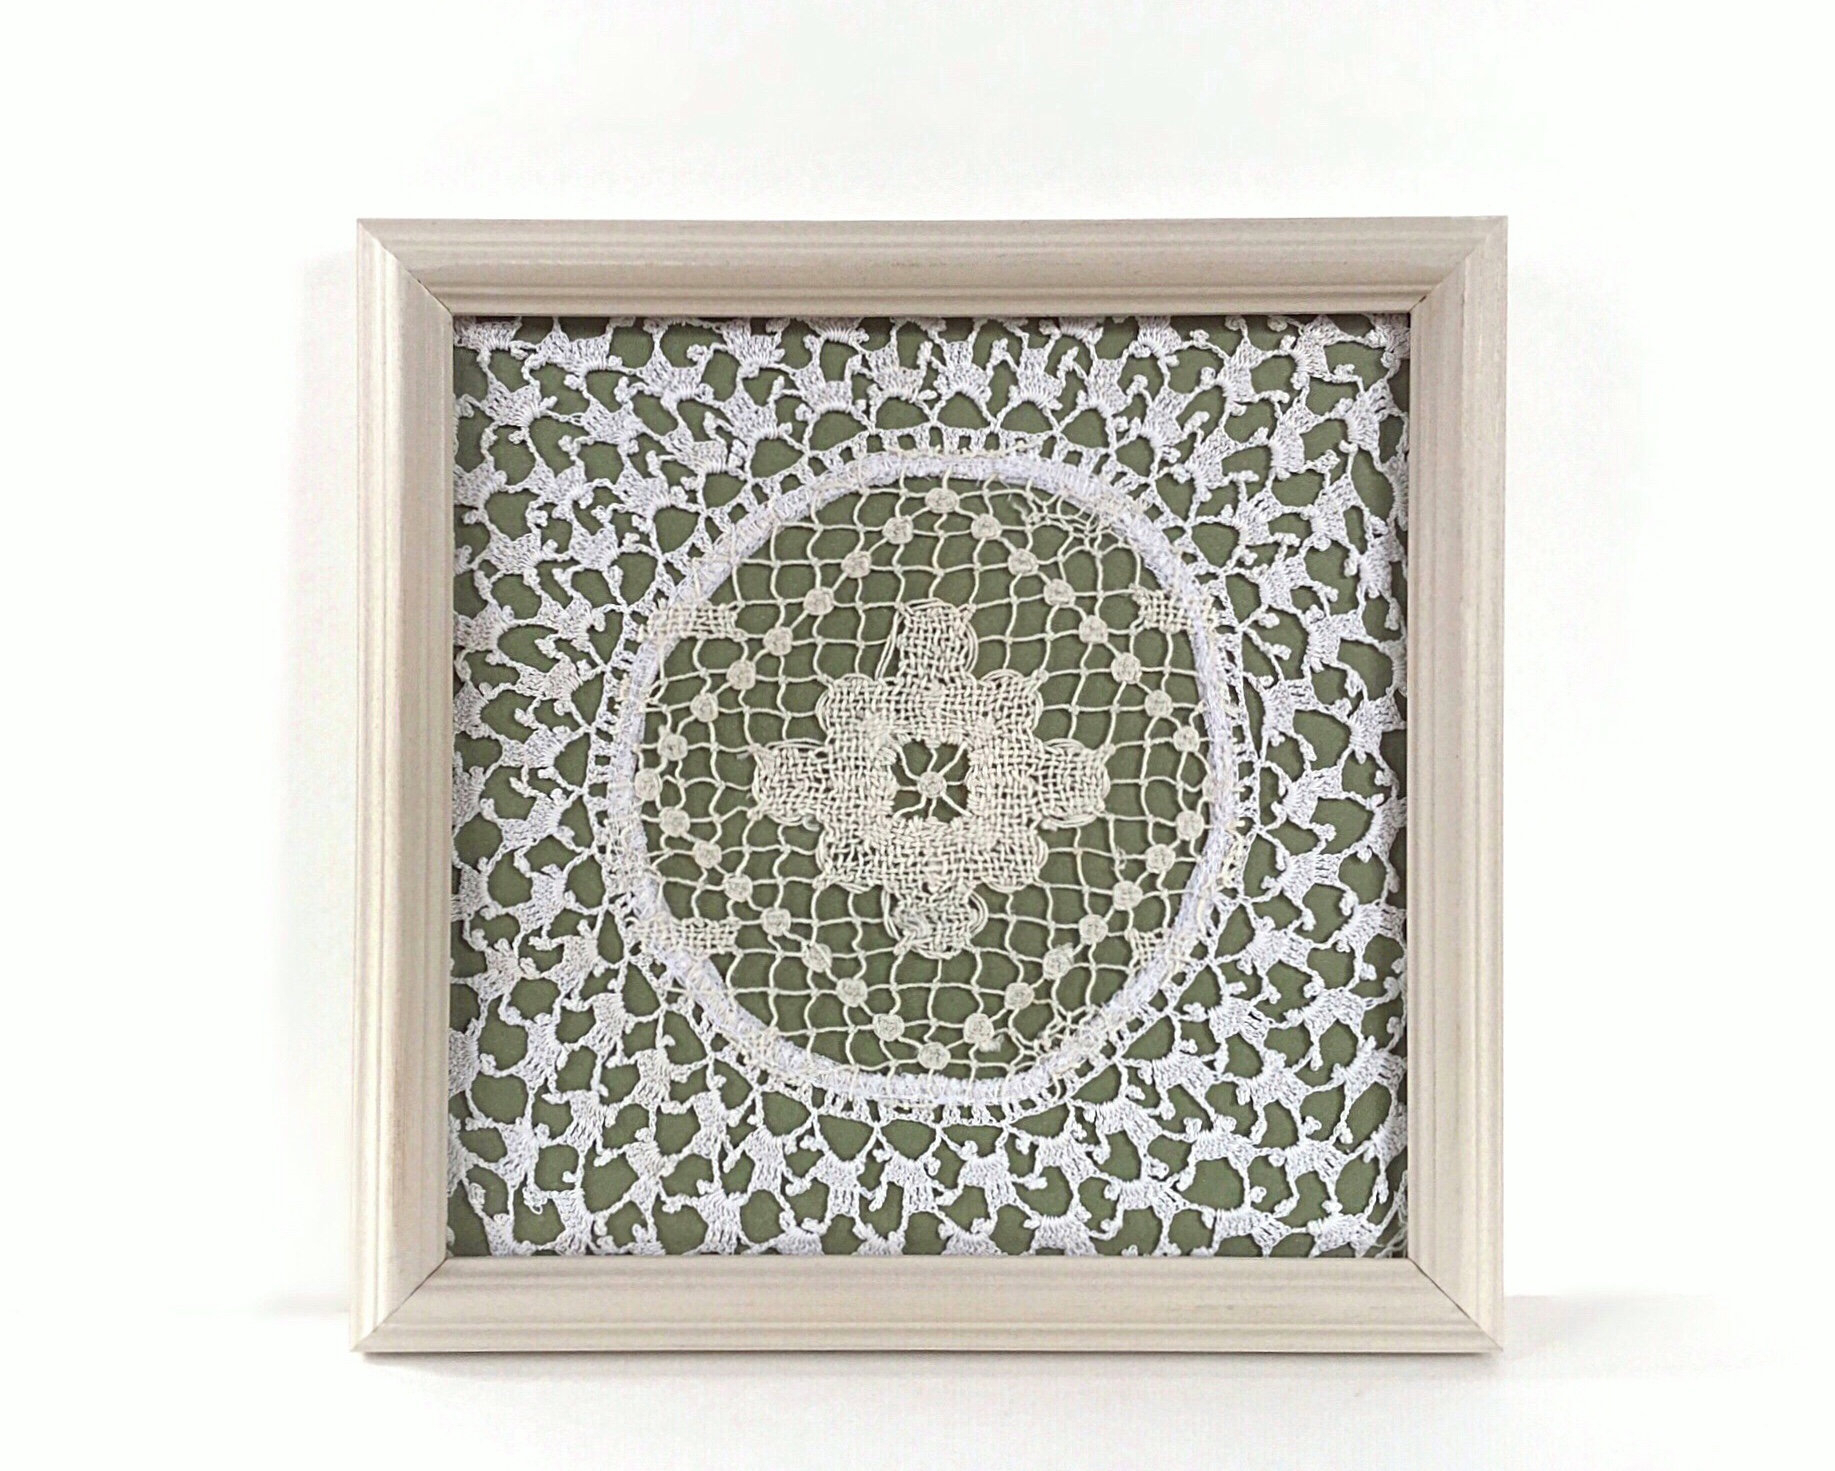 Olive Green Wall Art Doily In A Frame Green Wall Decor (View 10 of 20)